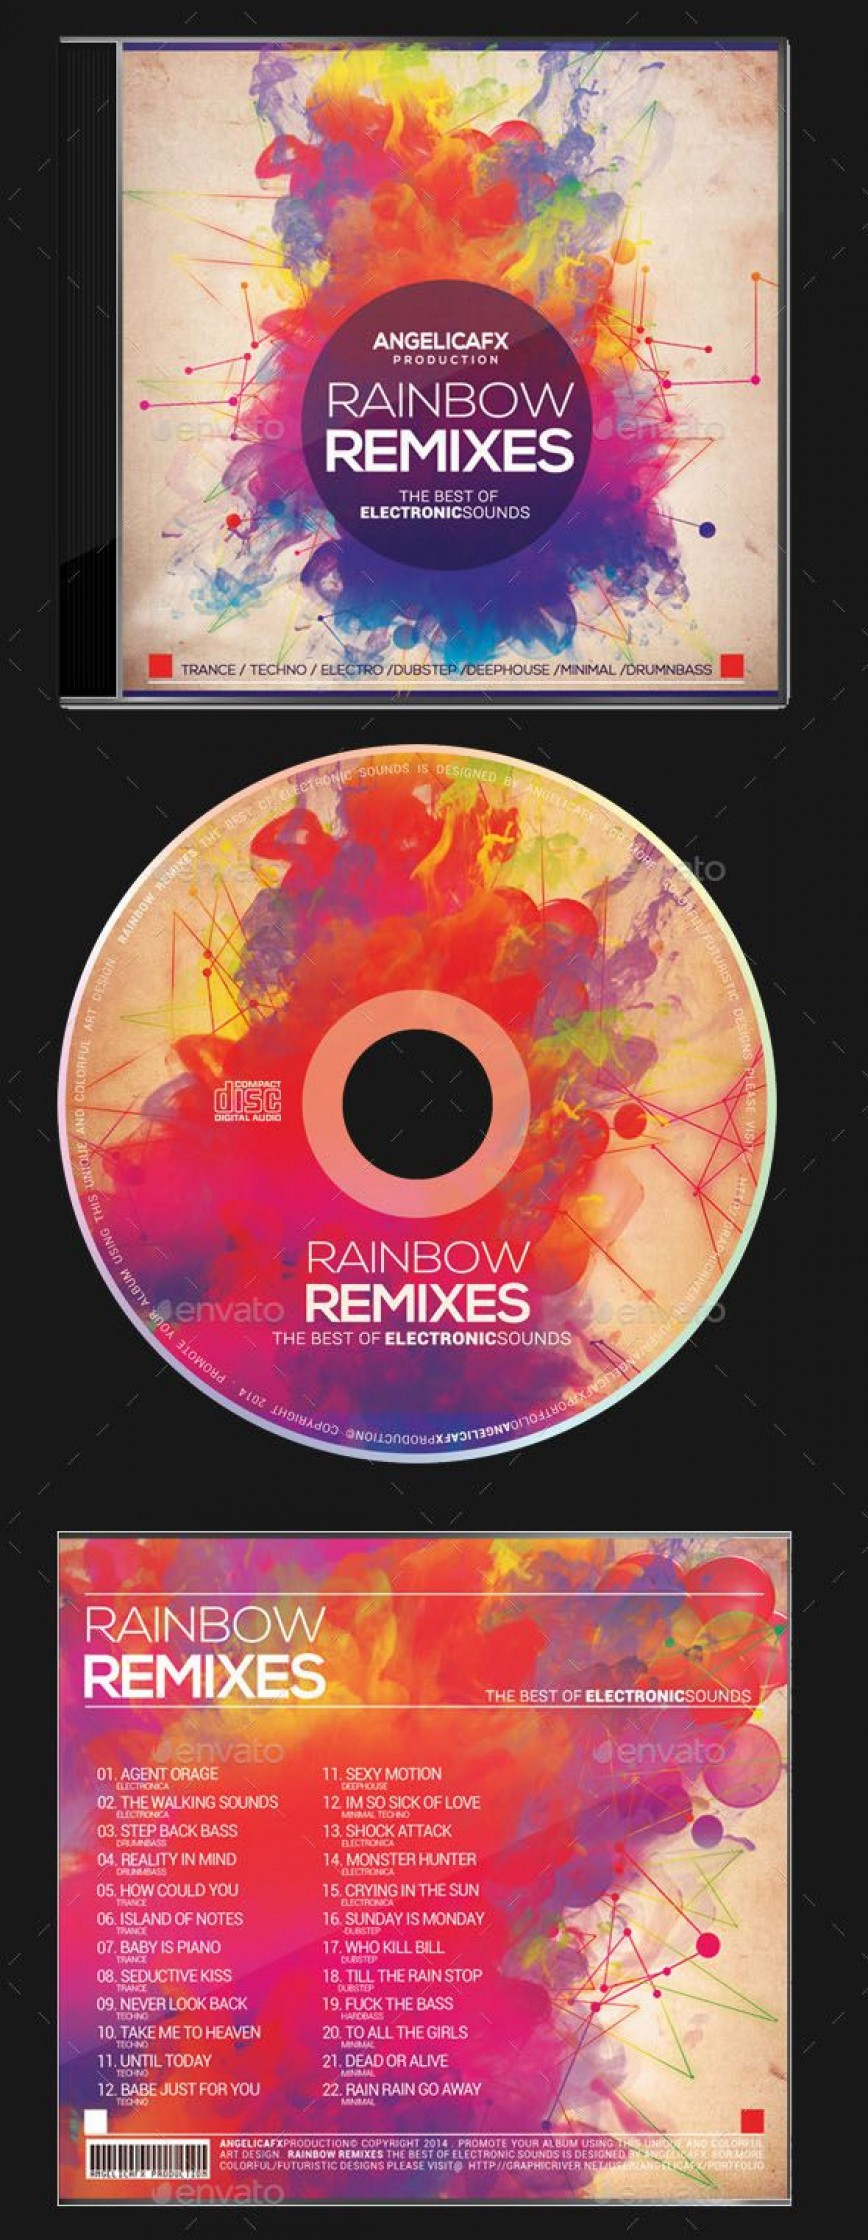 002 Unforgettable Free Cd Cover Design Template Photoshop Inspiration  Label Psd Download868